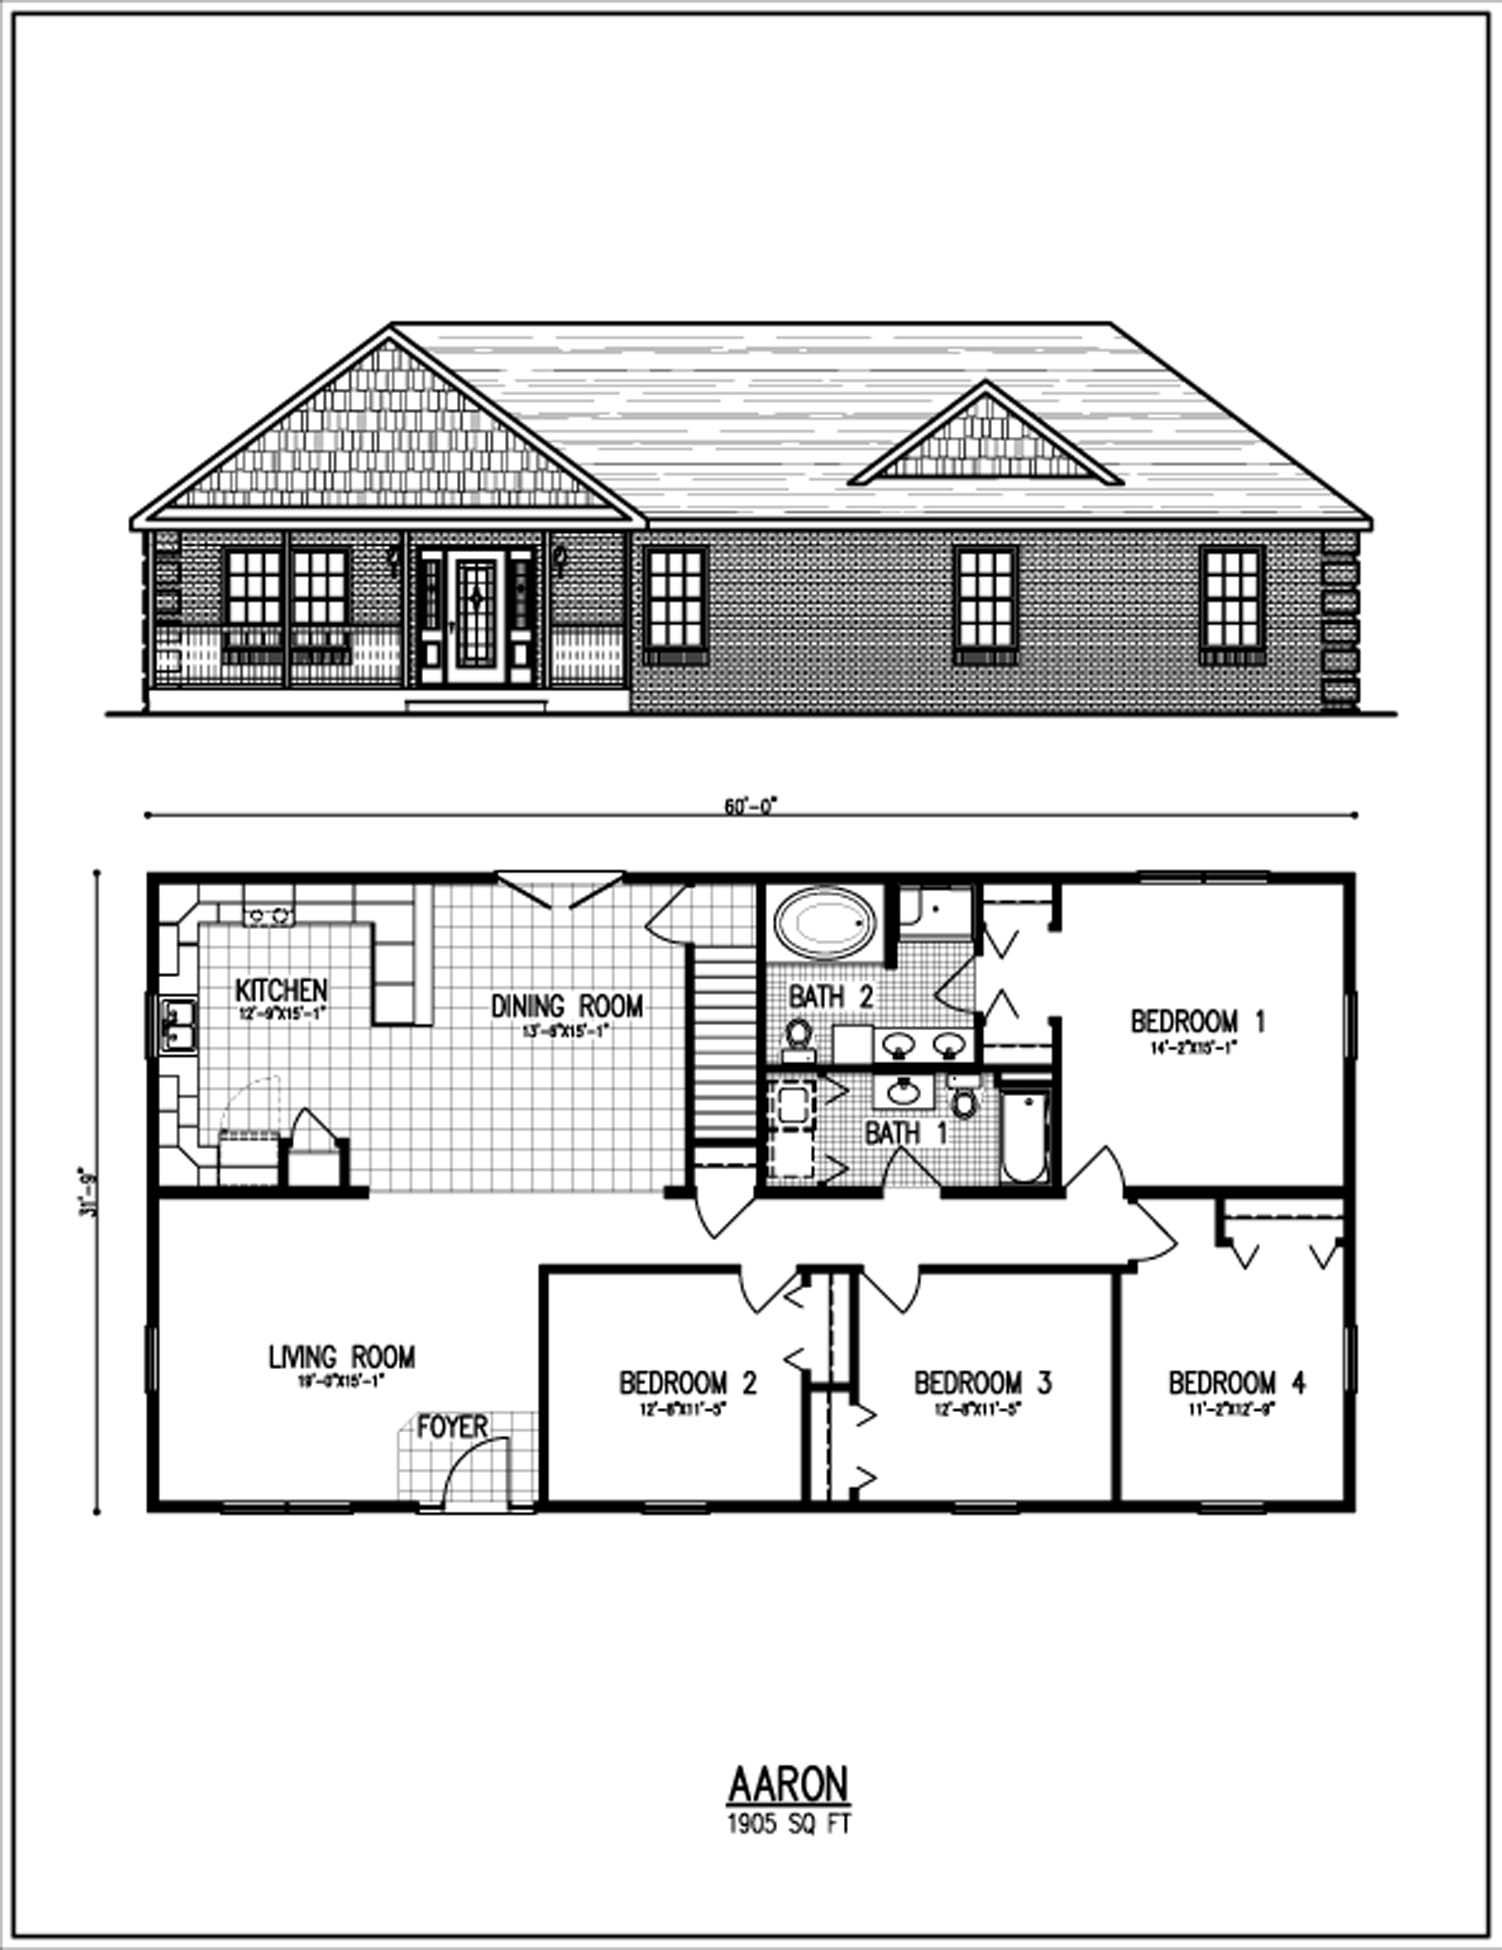 All american homes floorplan center staffordcape for Create blueprints online free